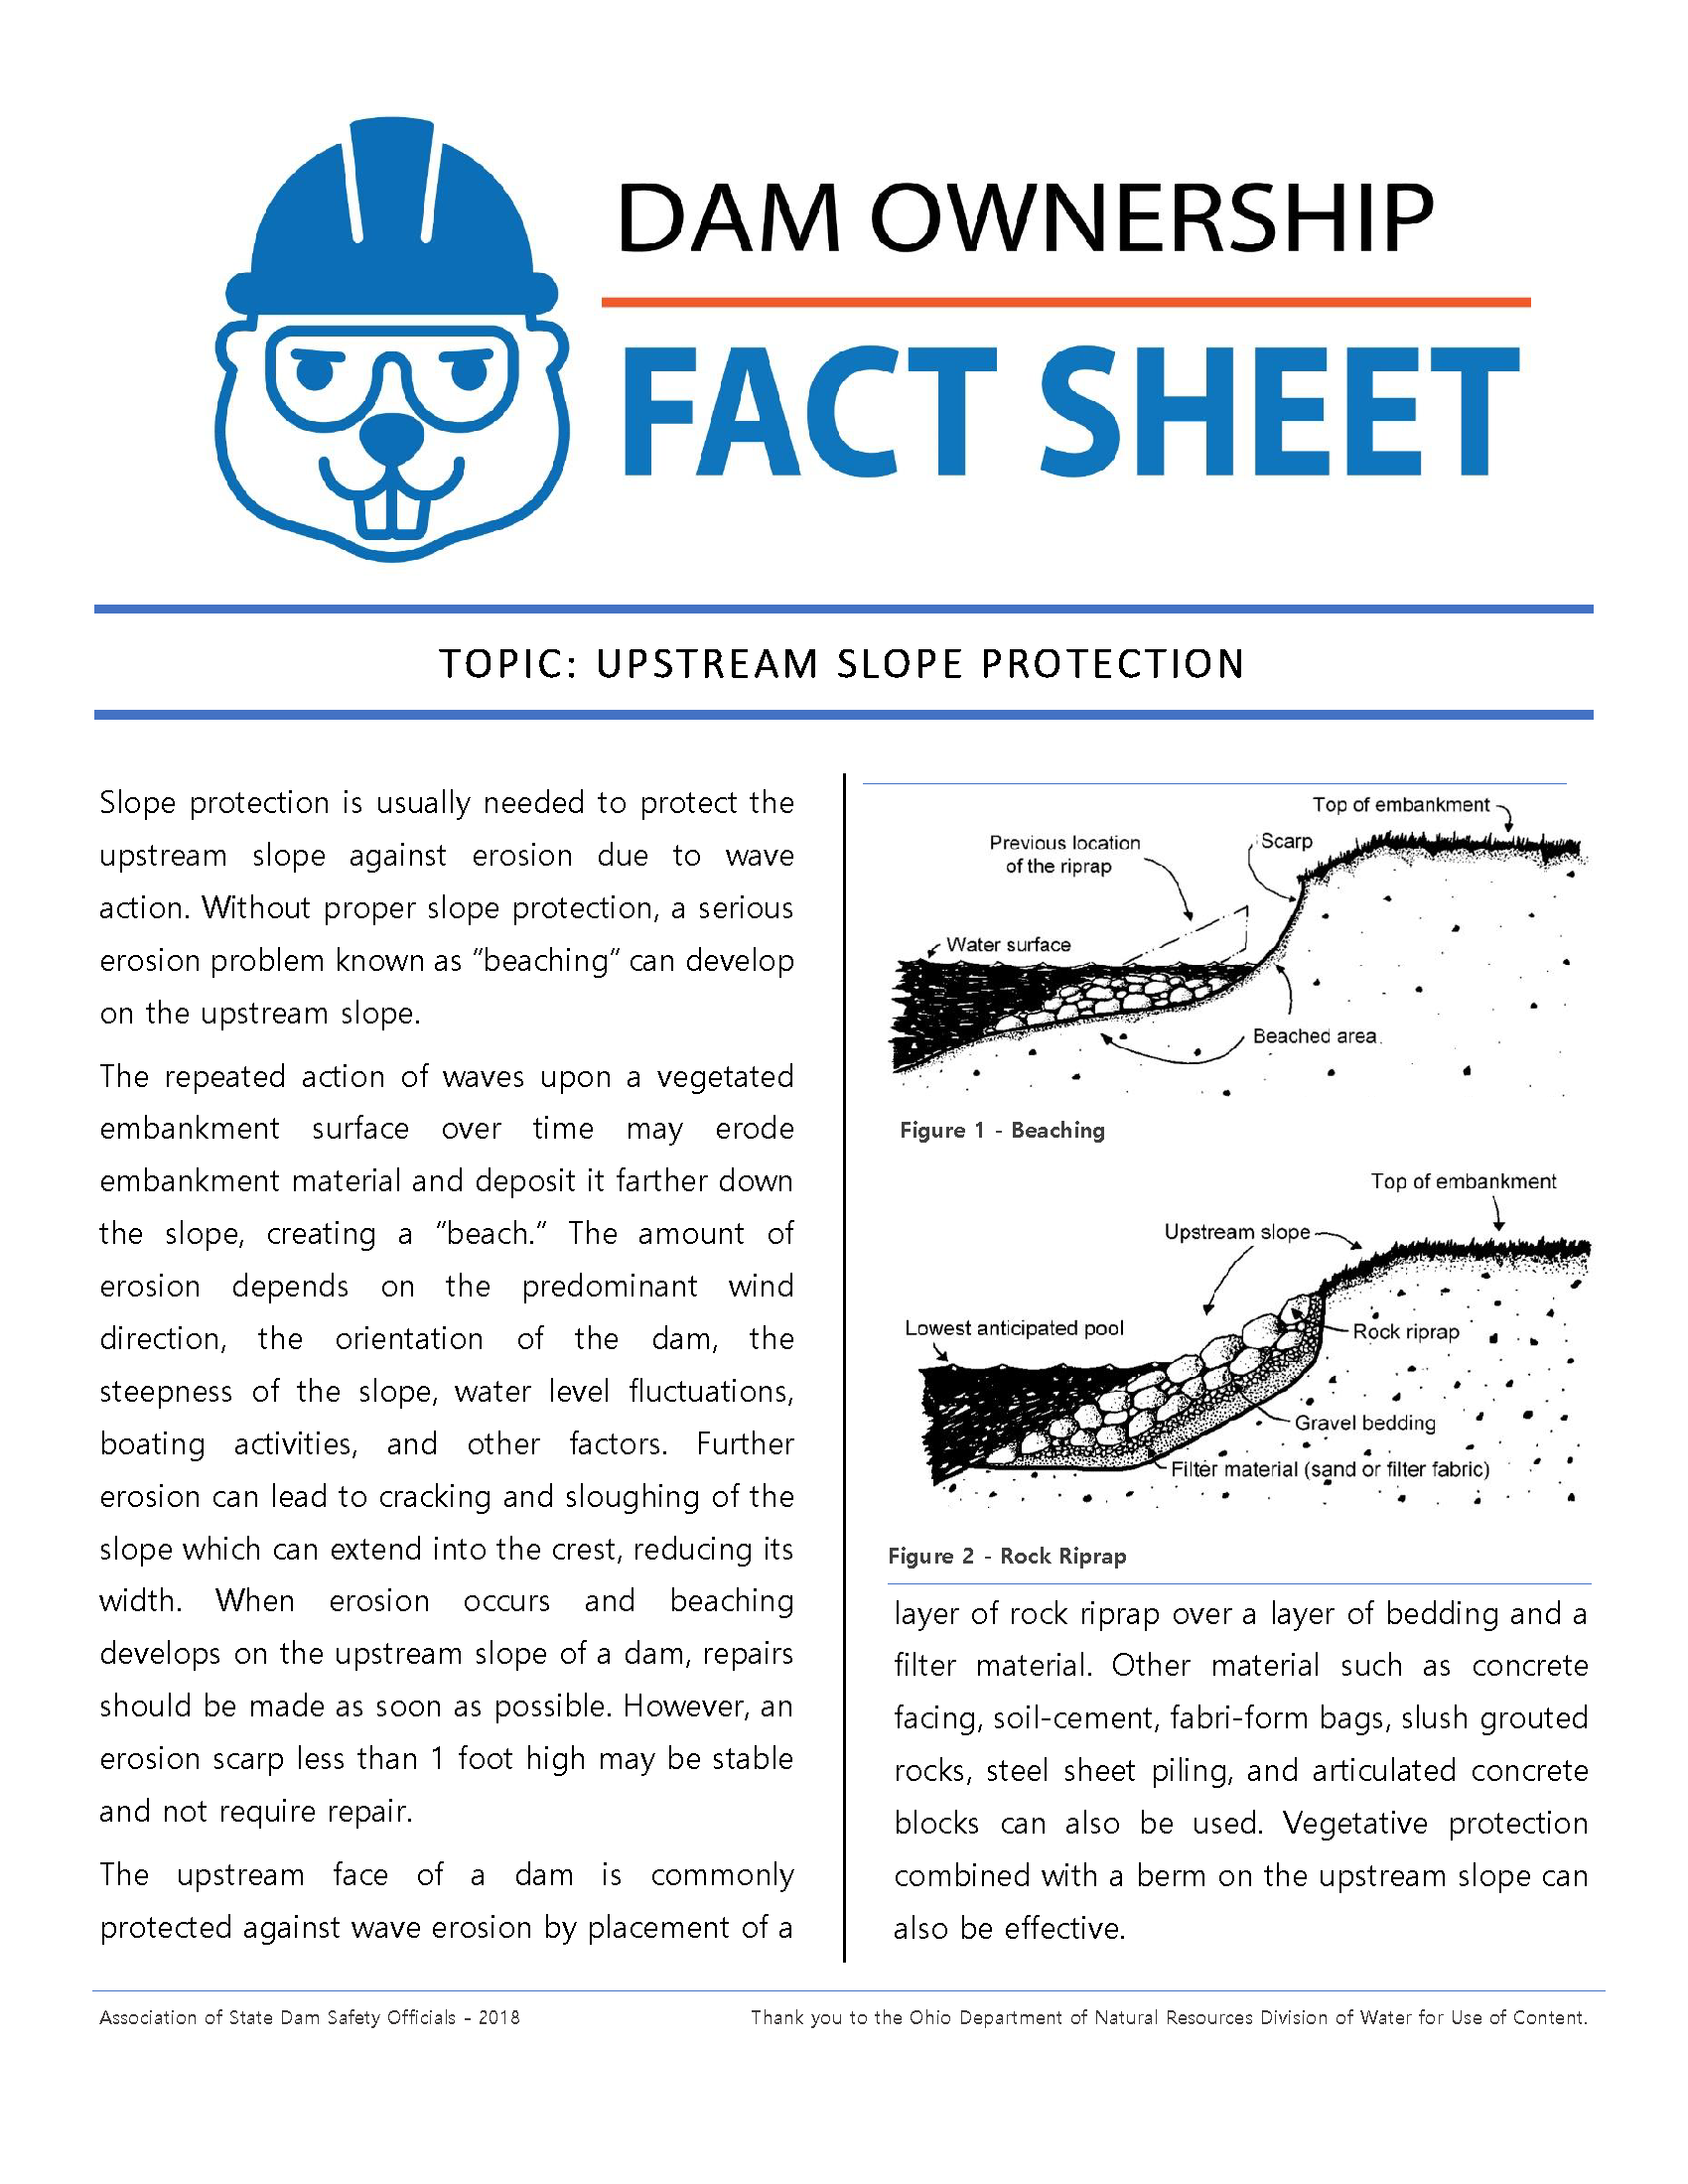 Upstream Slope Protection Fact Sheet 2018_Page_1.png